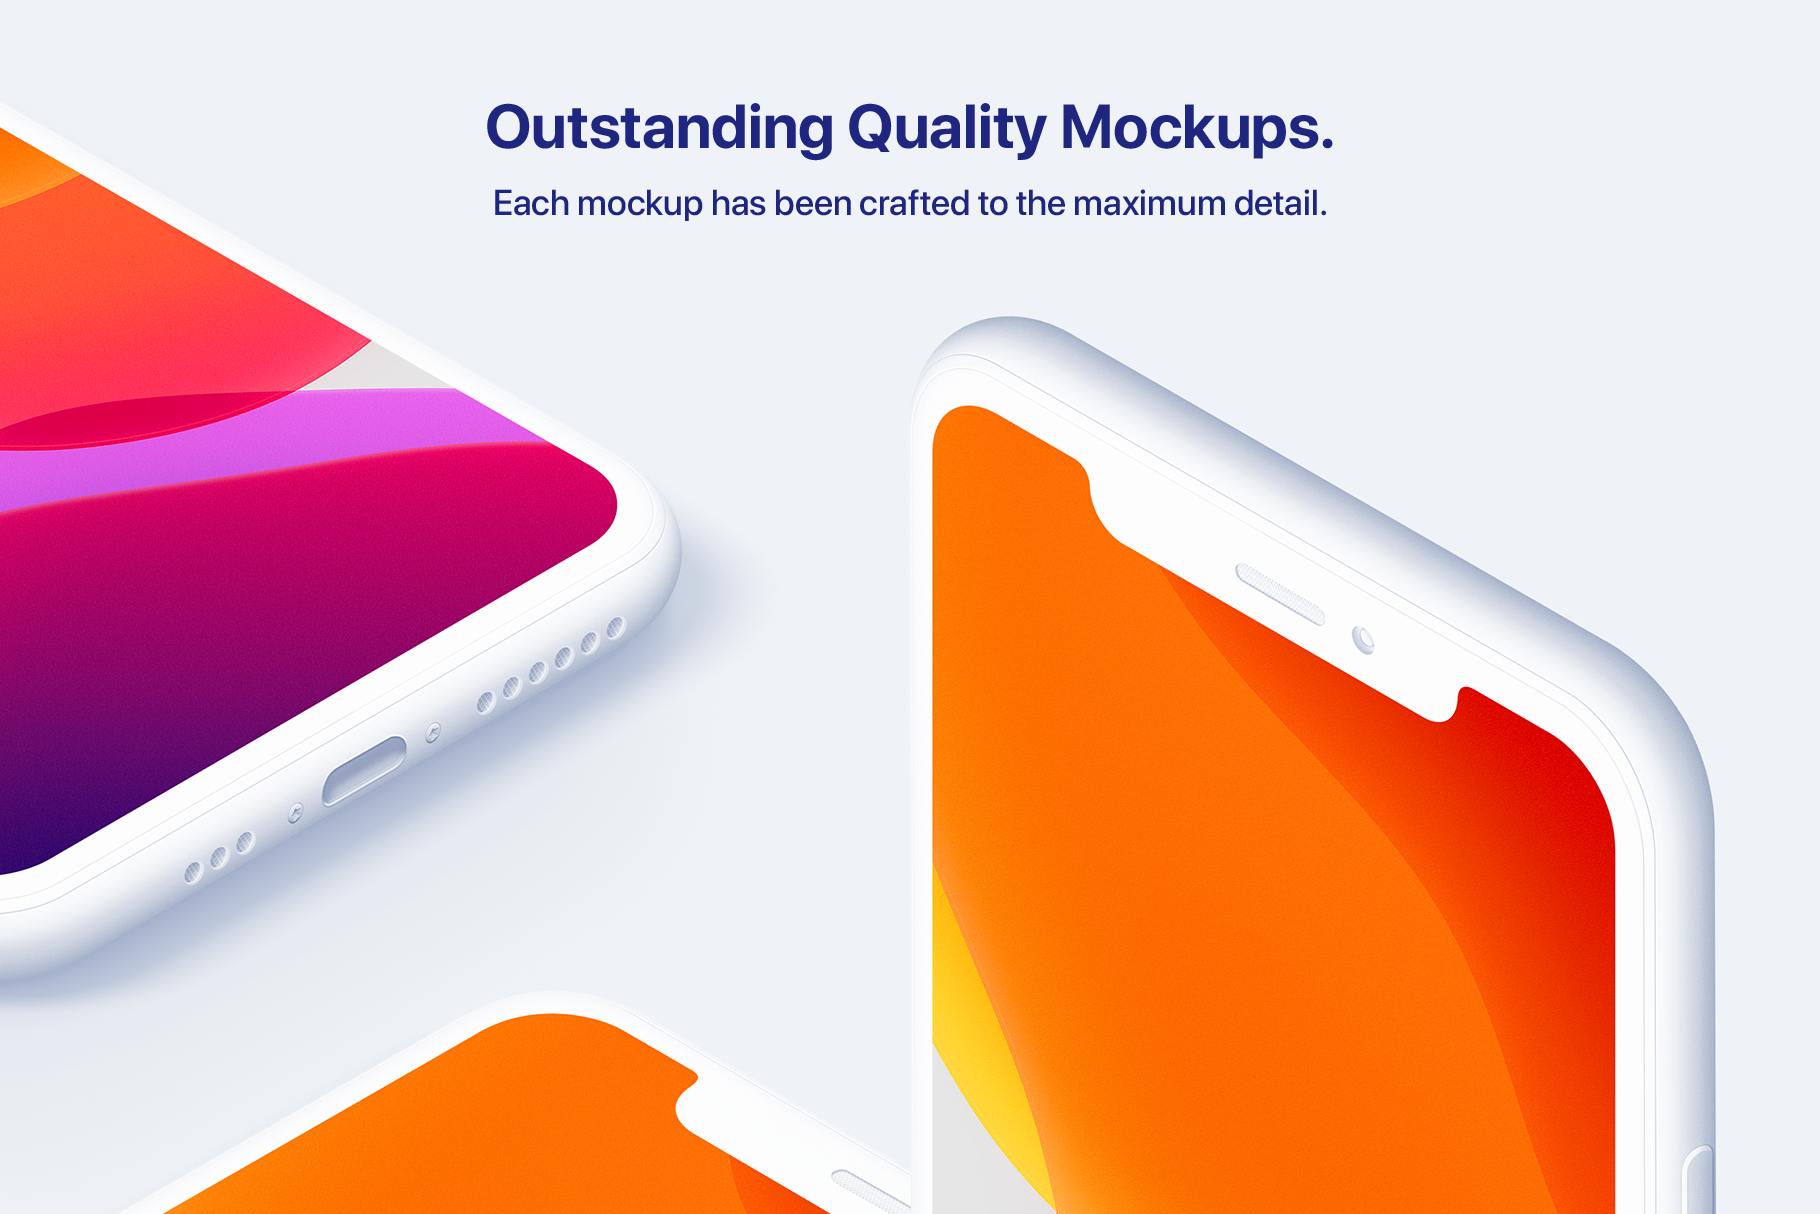 iPhone 11 Pro - 20 Clay Mockups Scenes - PSD example image 5